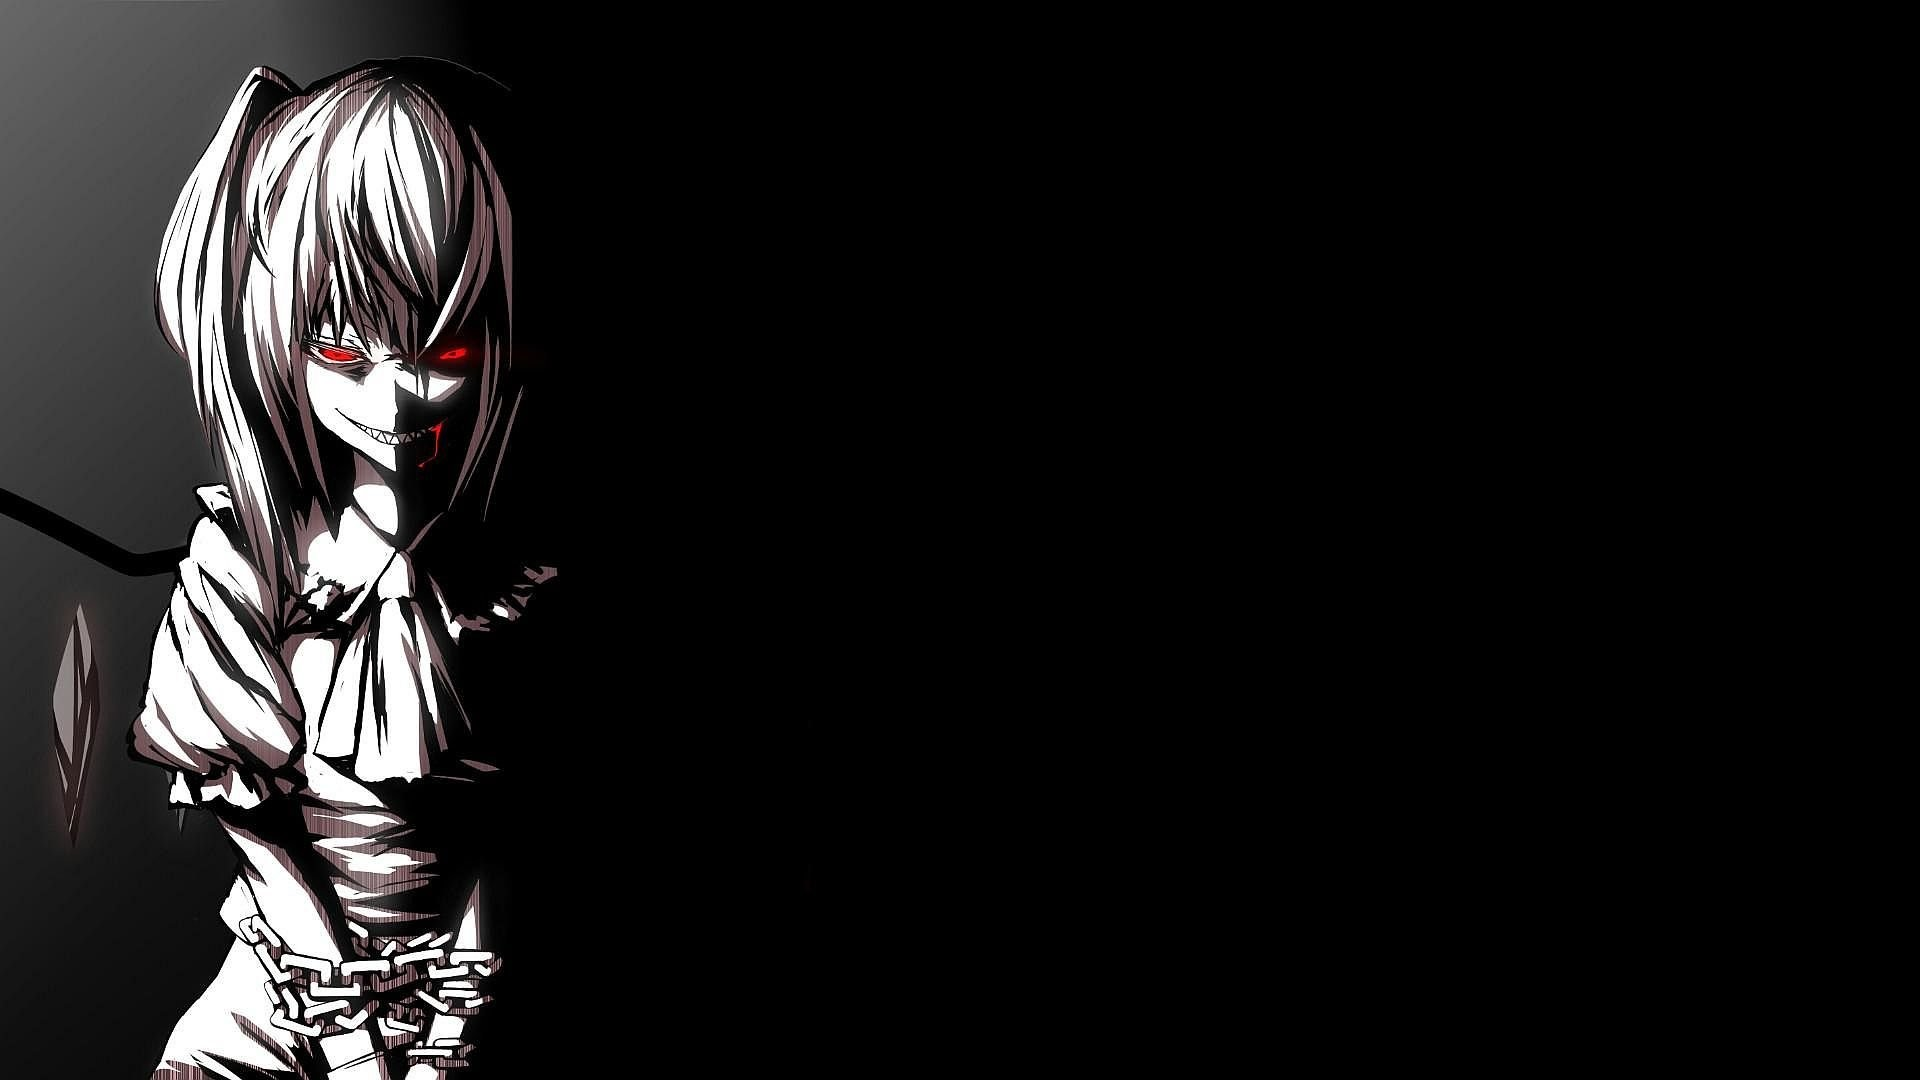 creepy anime wallpaper 58 images